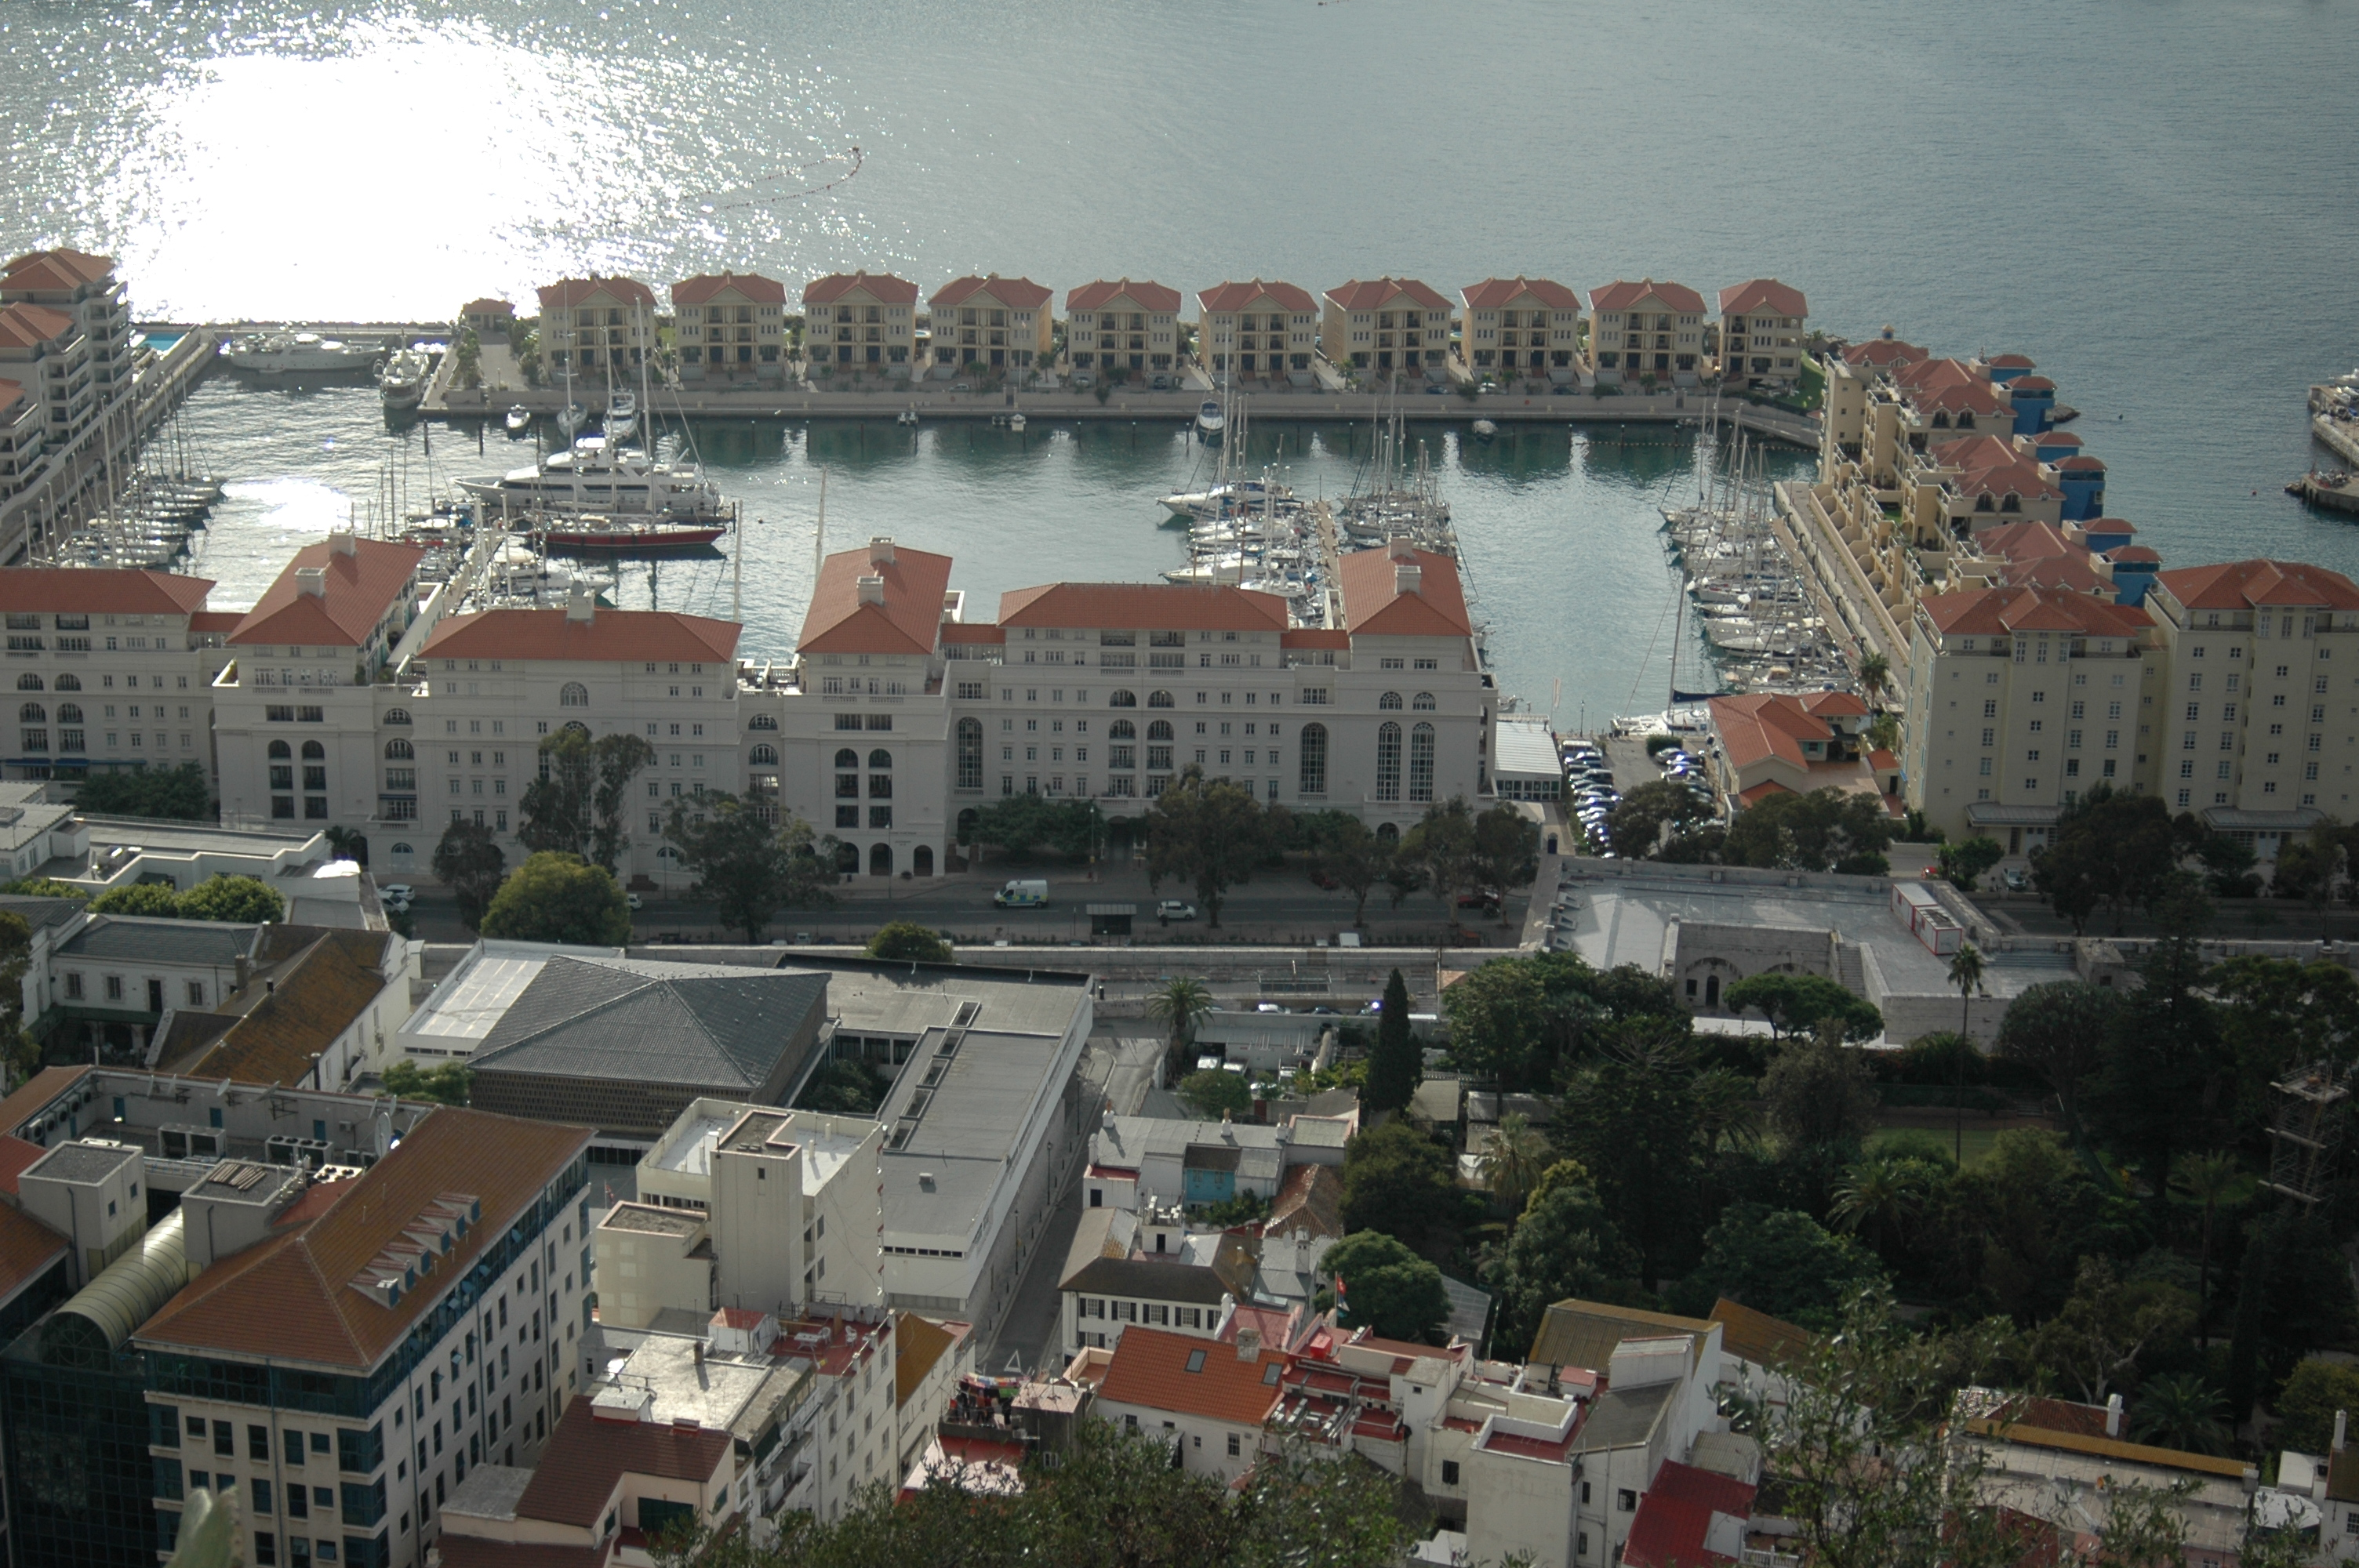 File:Queensway Quay, Gibraltar.JPG - Wikimedia Commons